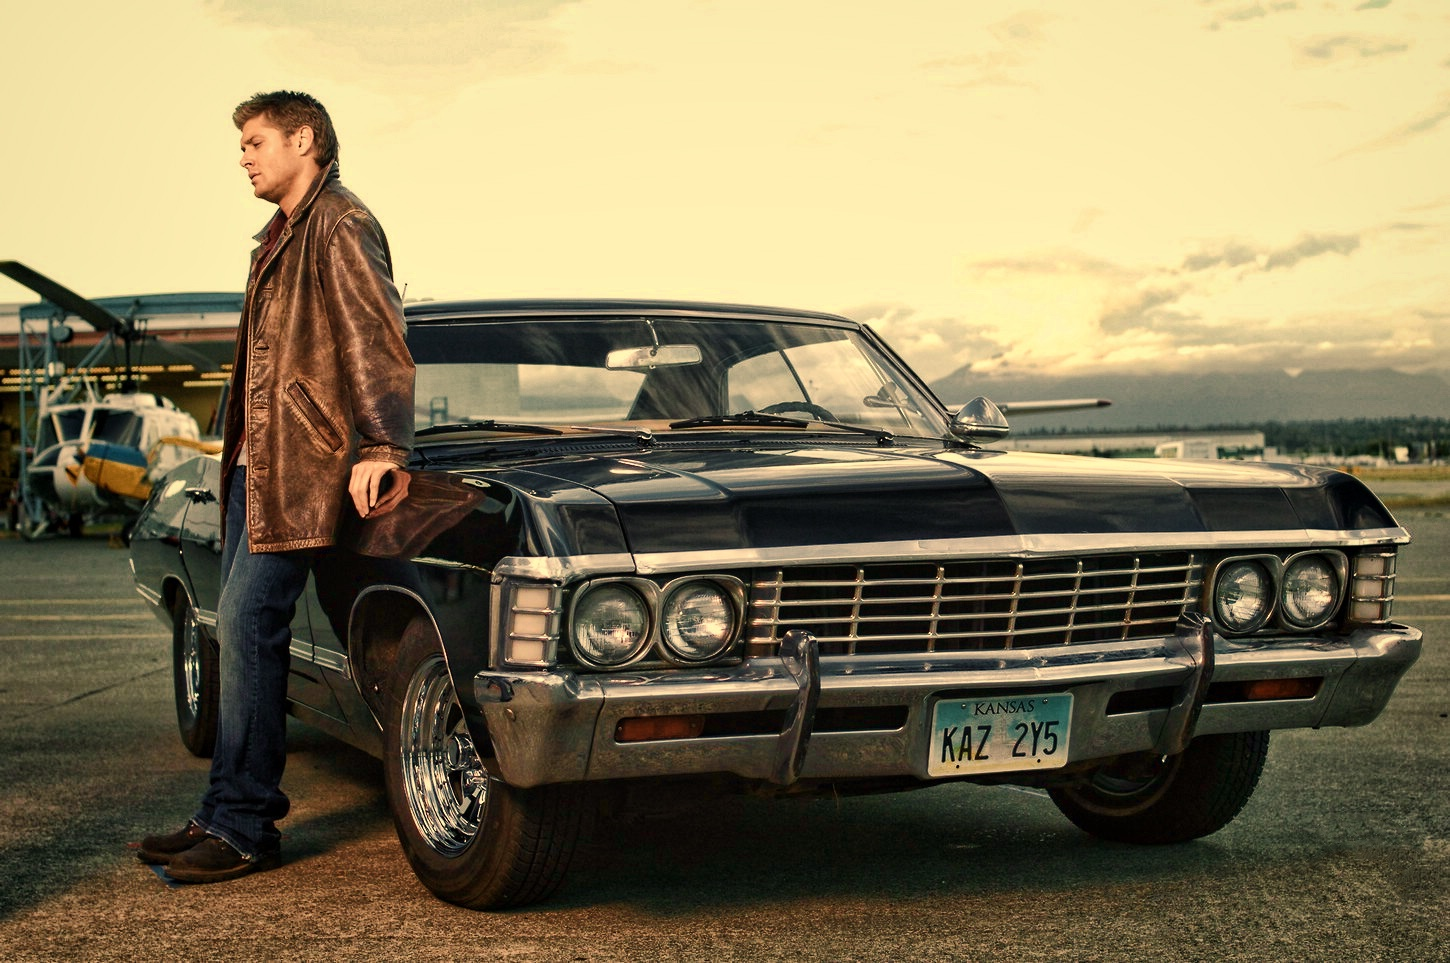 supernatural car impala wallpaper - photo #19